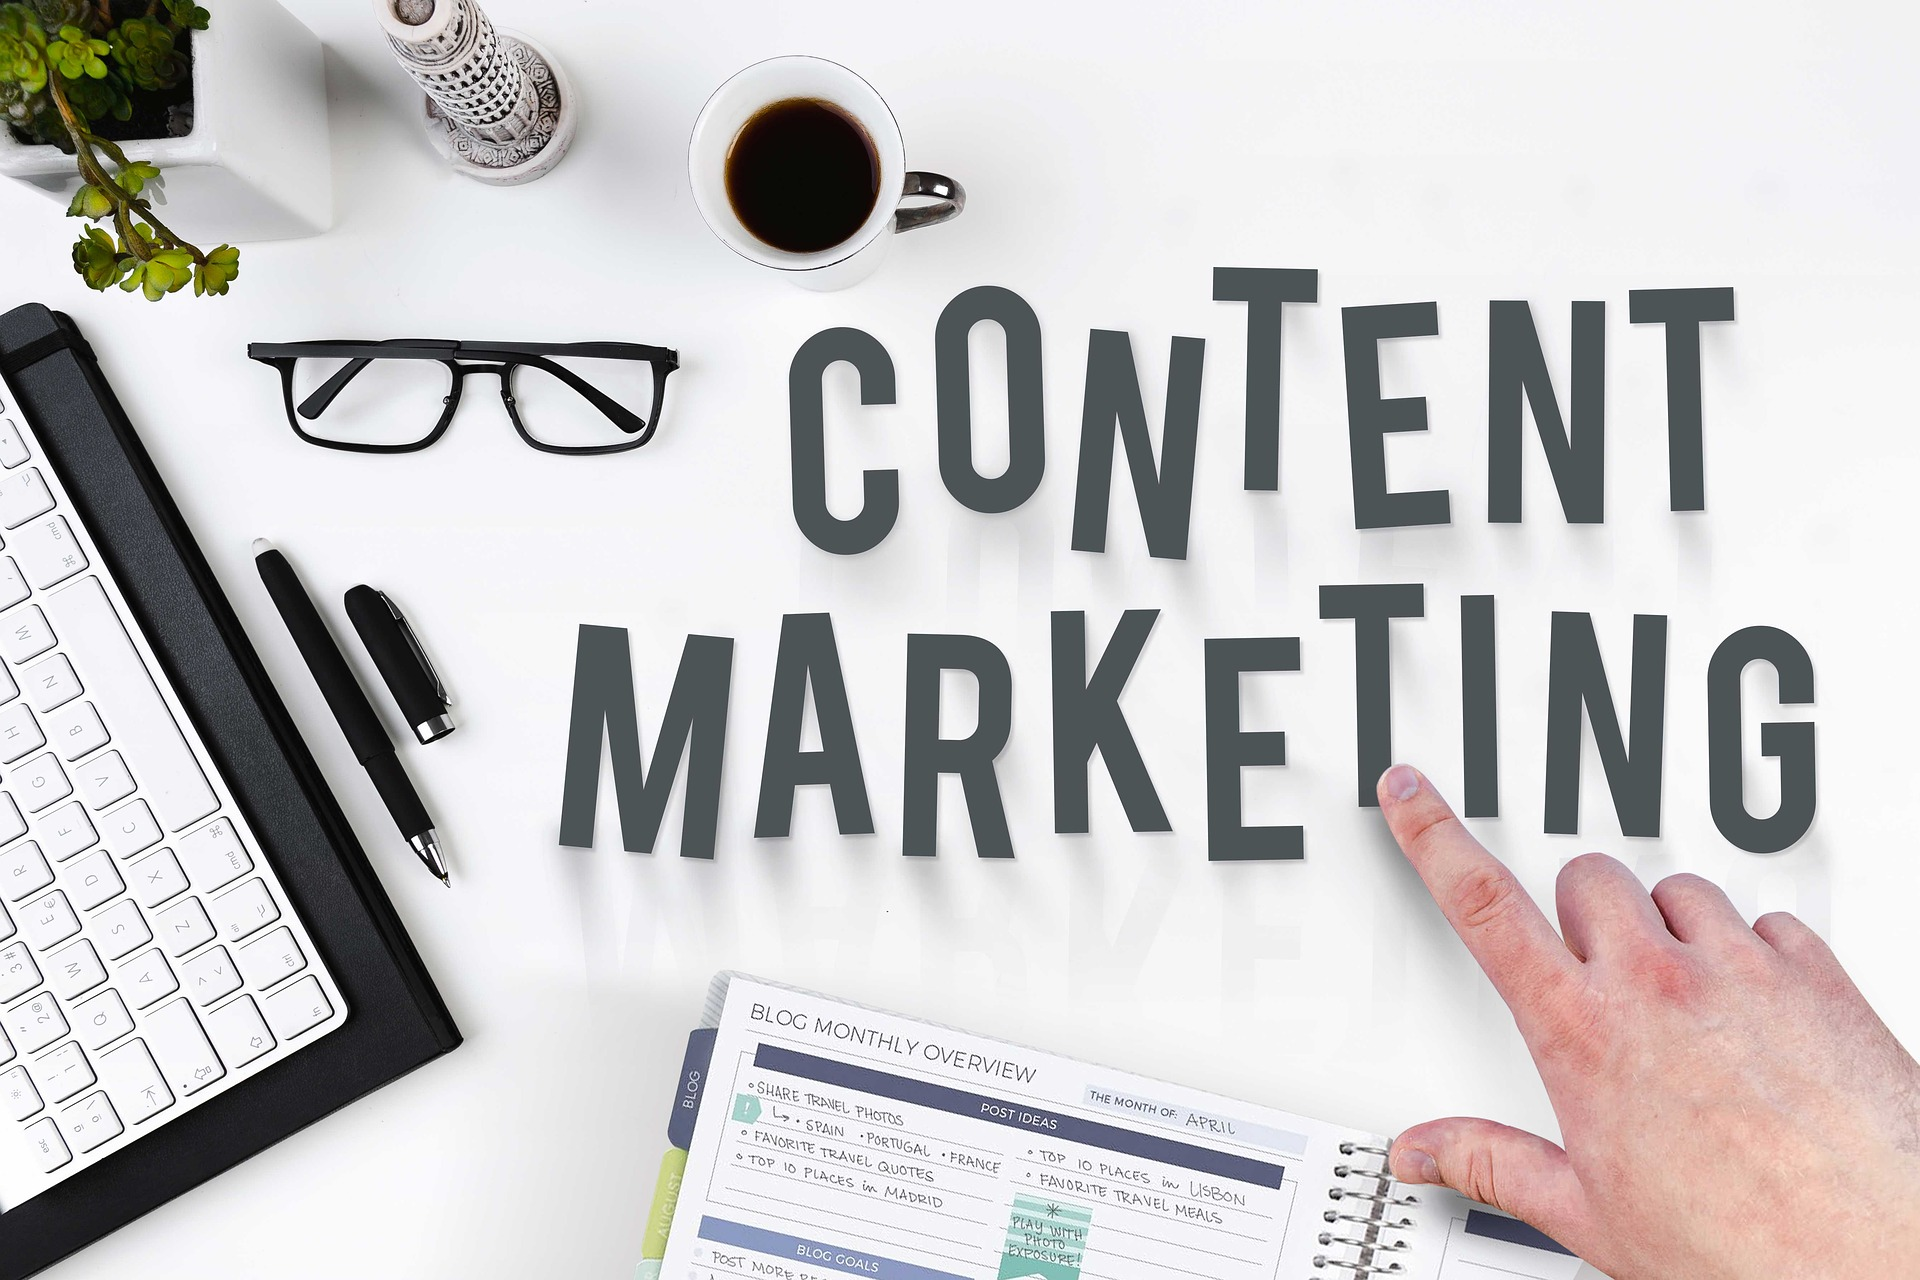 What are the Different Types of Content for Content Marketing?